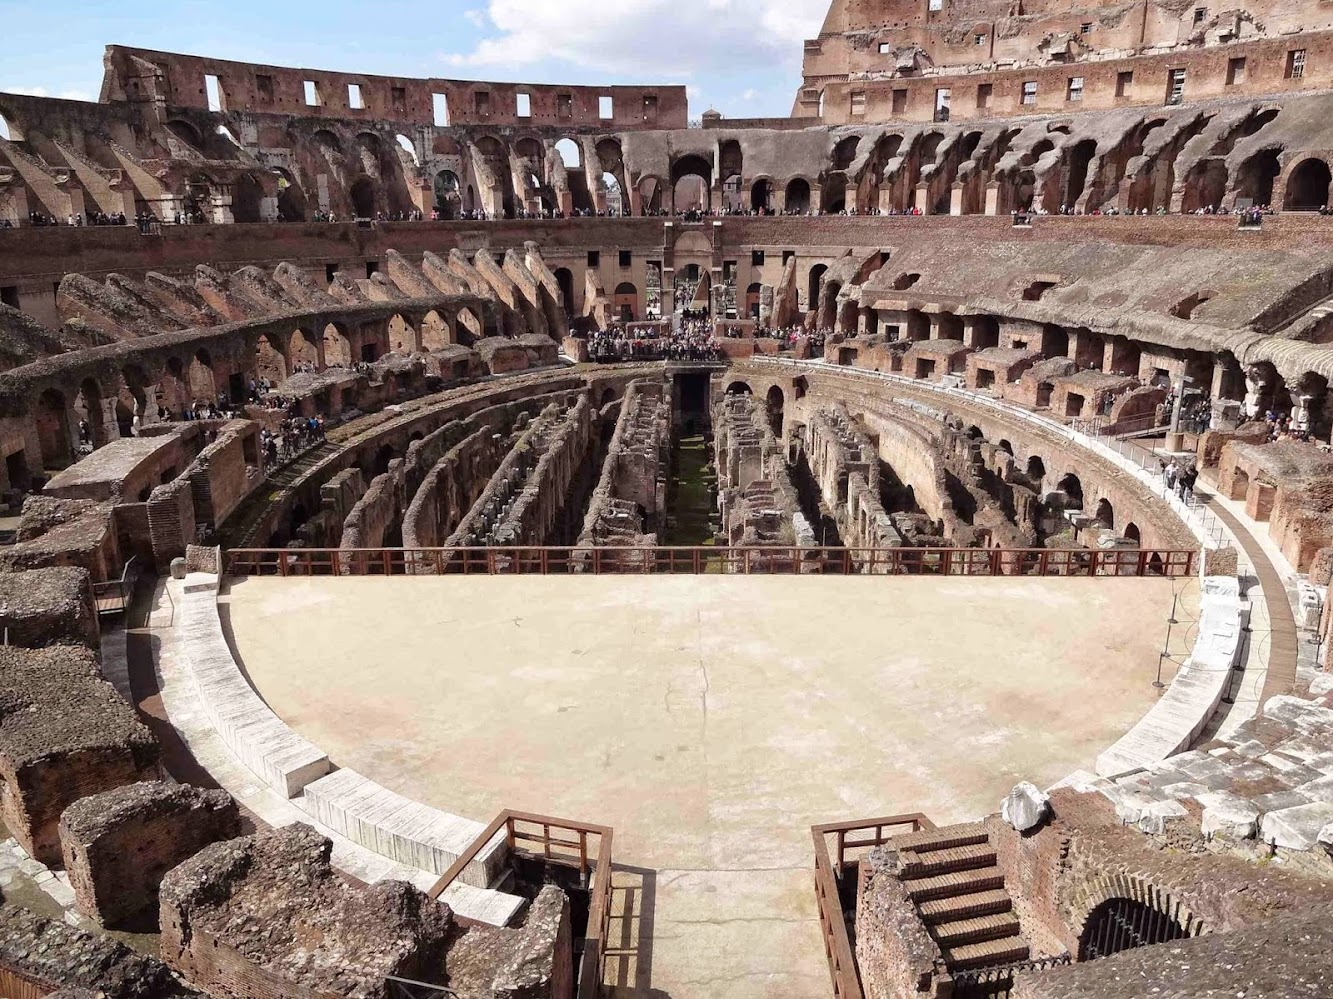 Proposal to rebuild arena floor of Rome's Colosseum